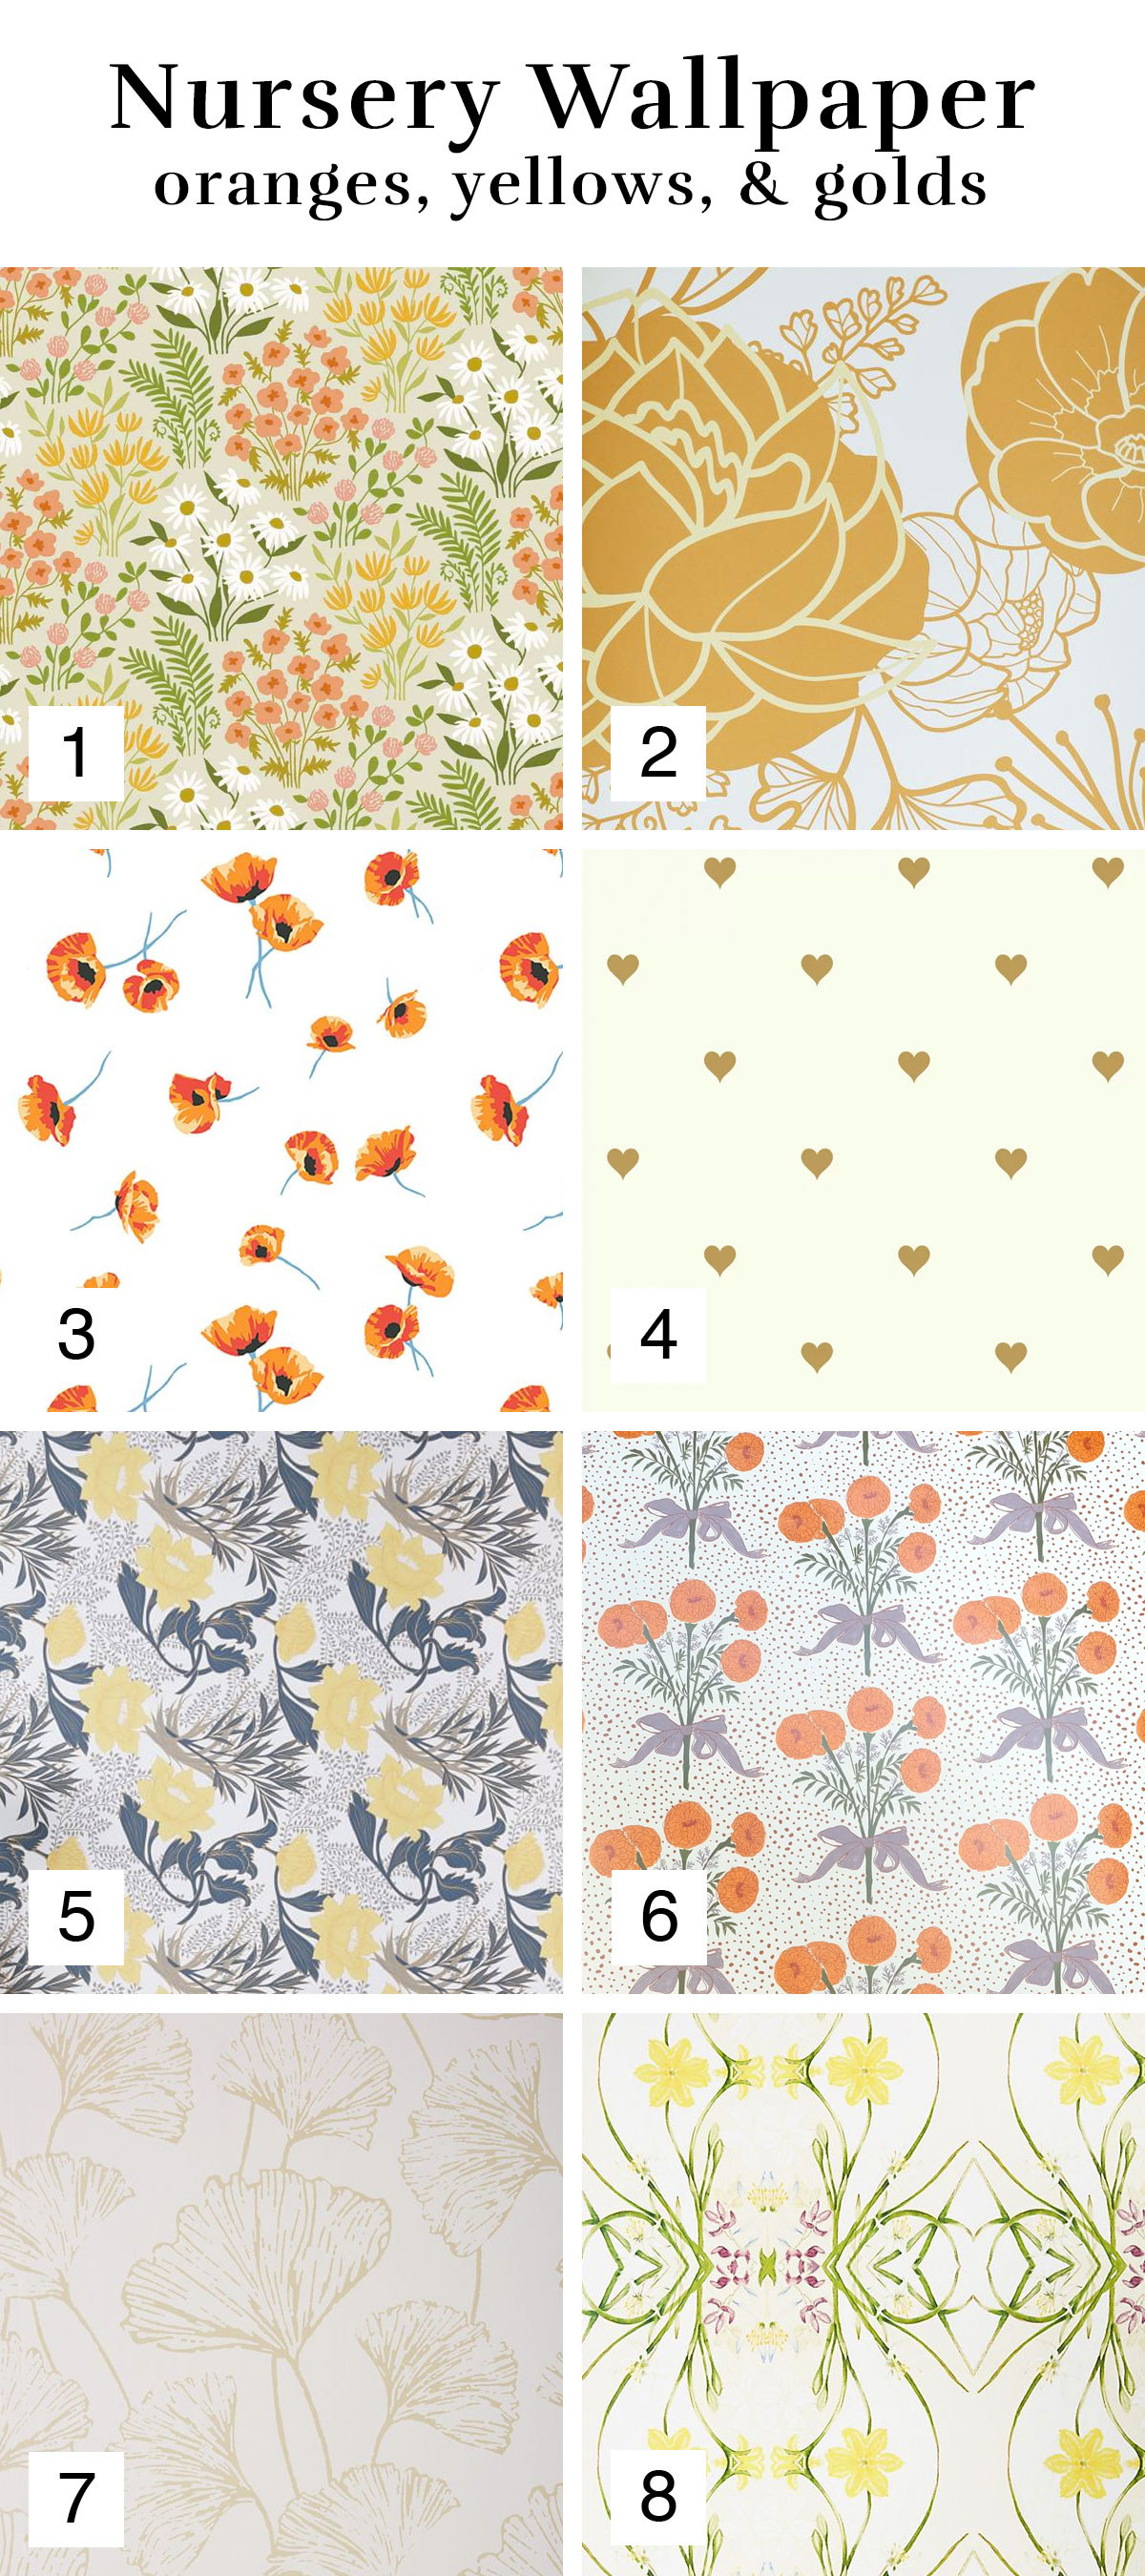 Orange, Yellow, & Gold Wallpaper Inspiration Roundup for a Nursery or Girl's Room | Melissa Lynch | melissalynch.com